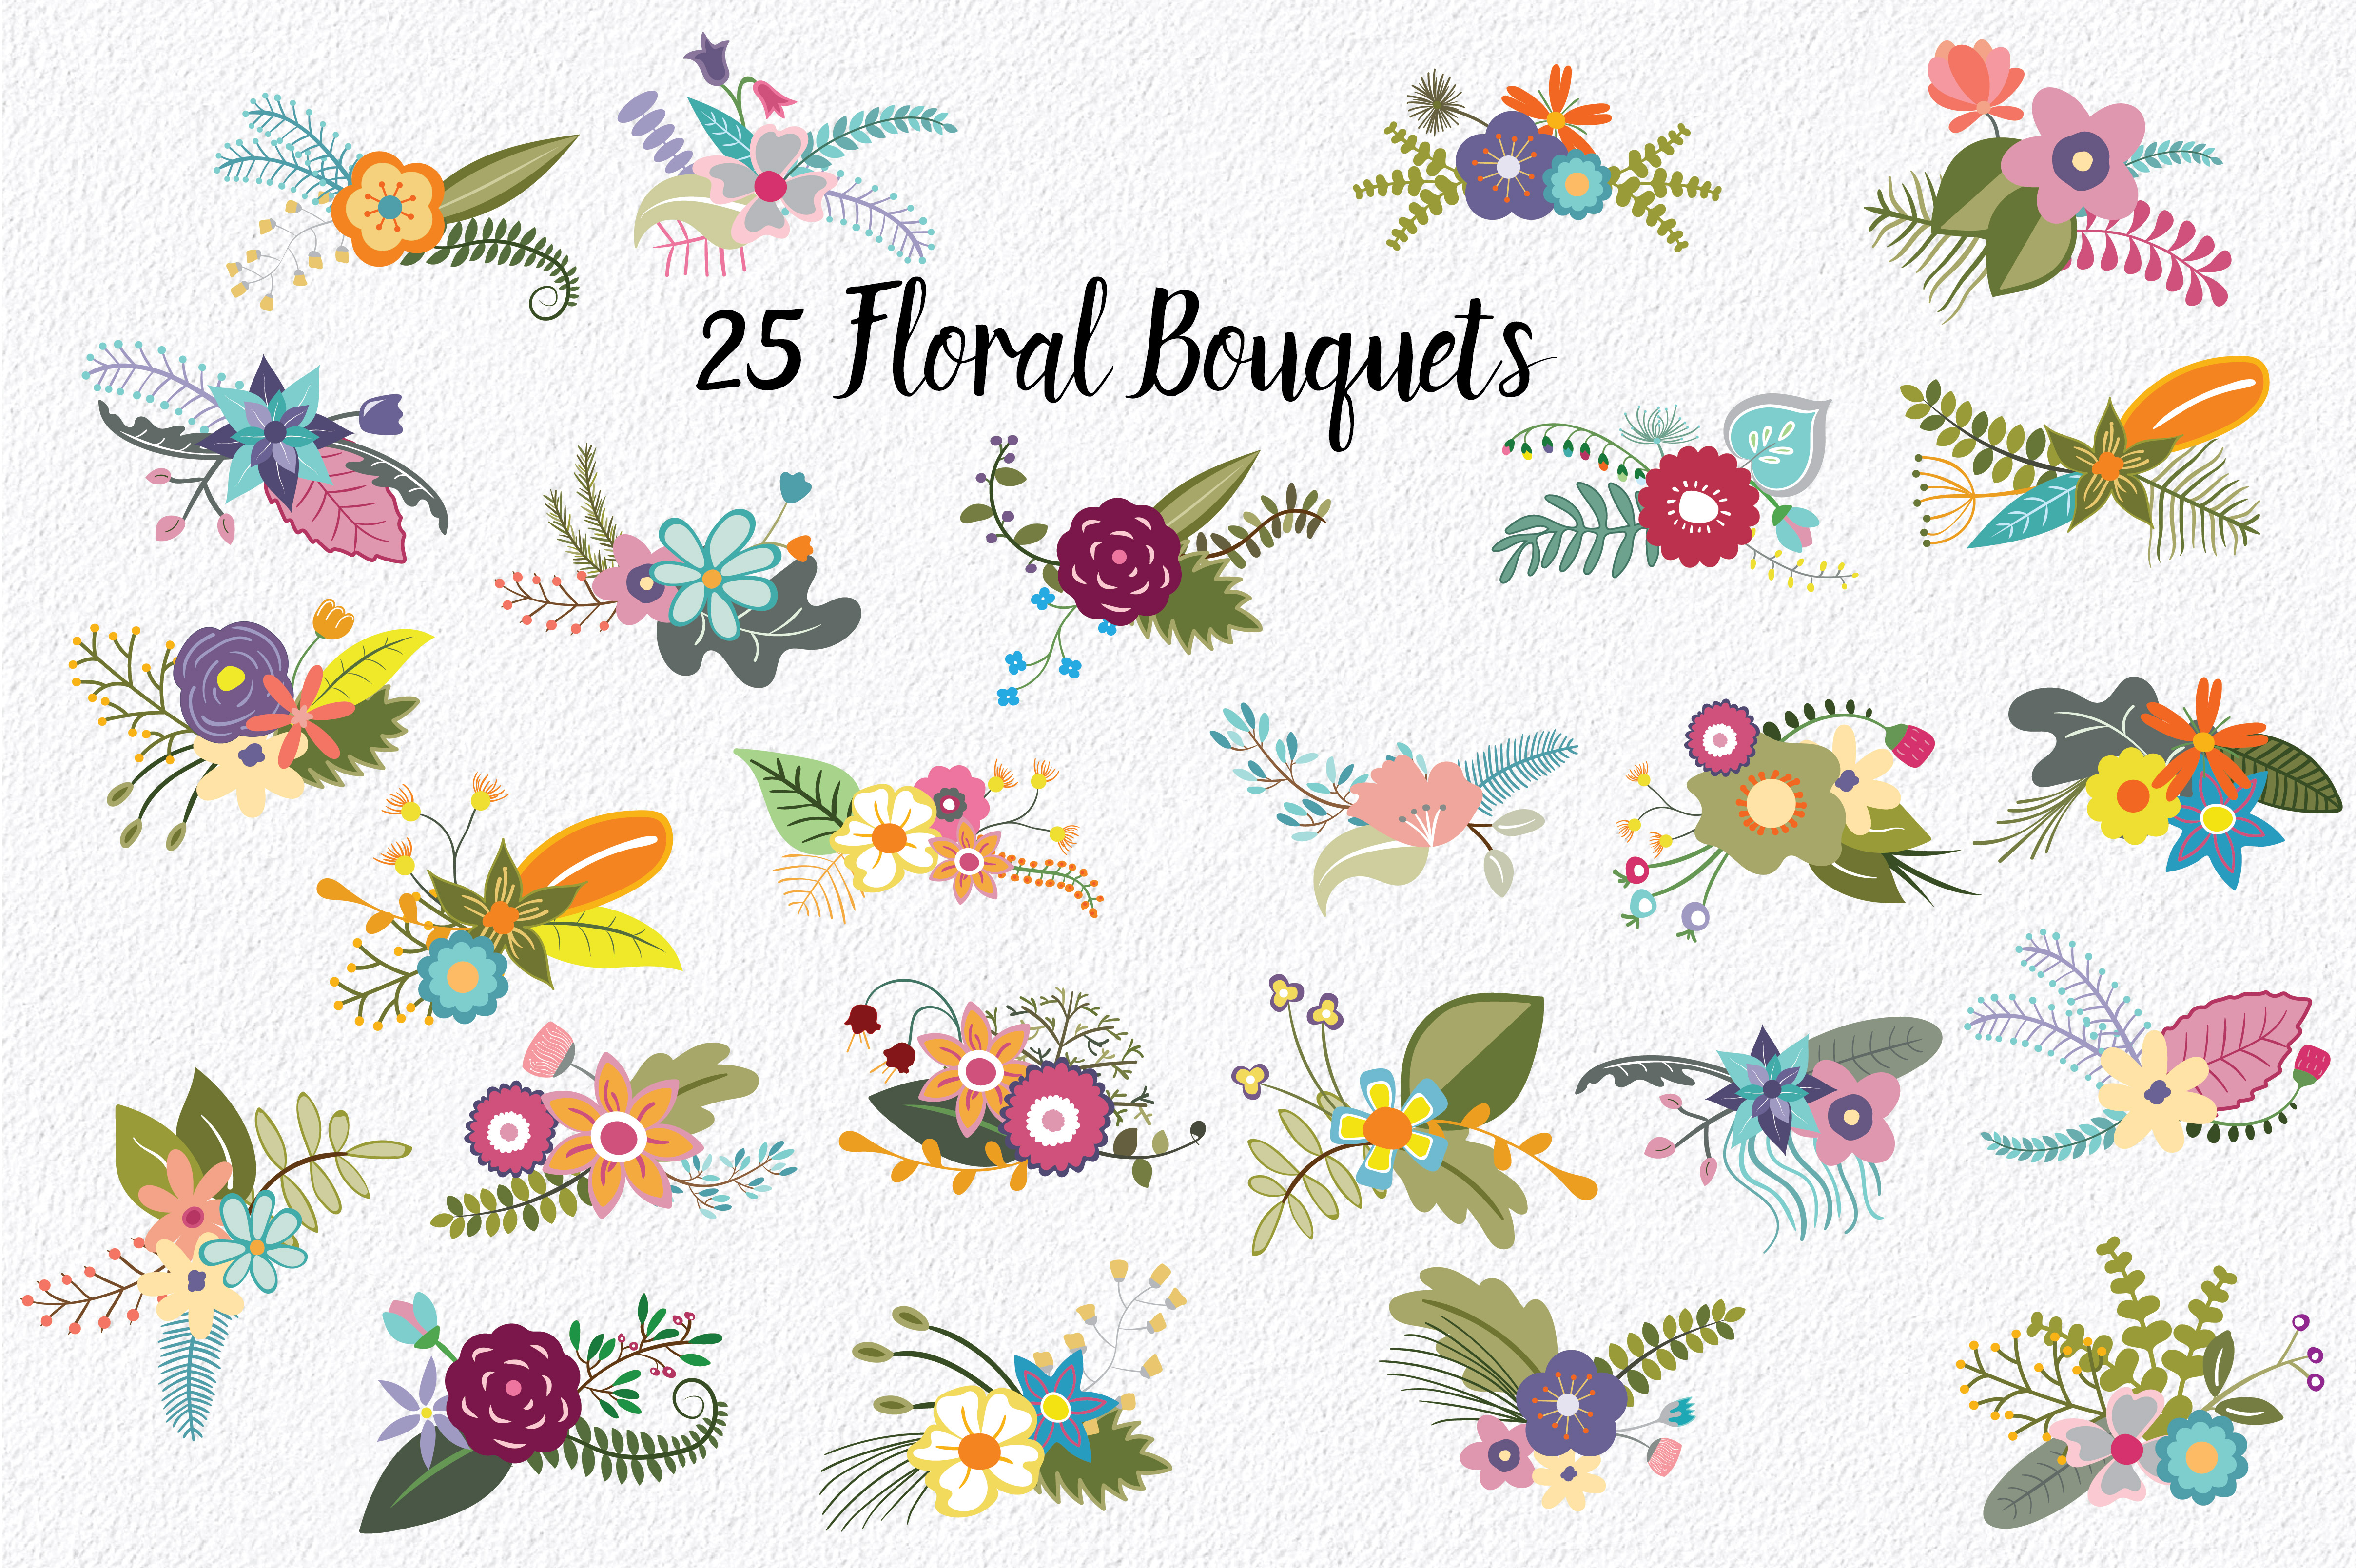 Flowers of Camelot Clip Art Graphic Illustrations By oldmarketdesigns - Image 3